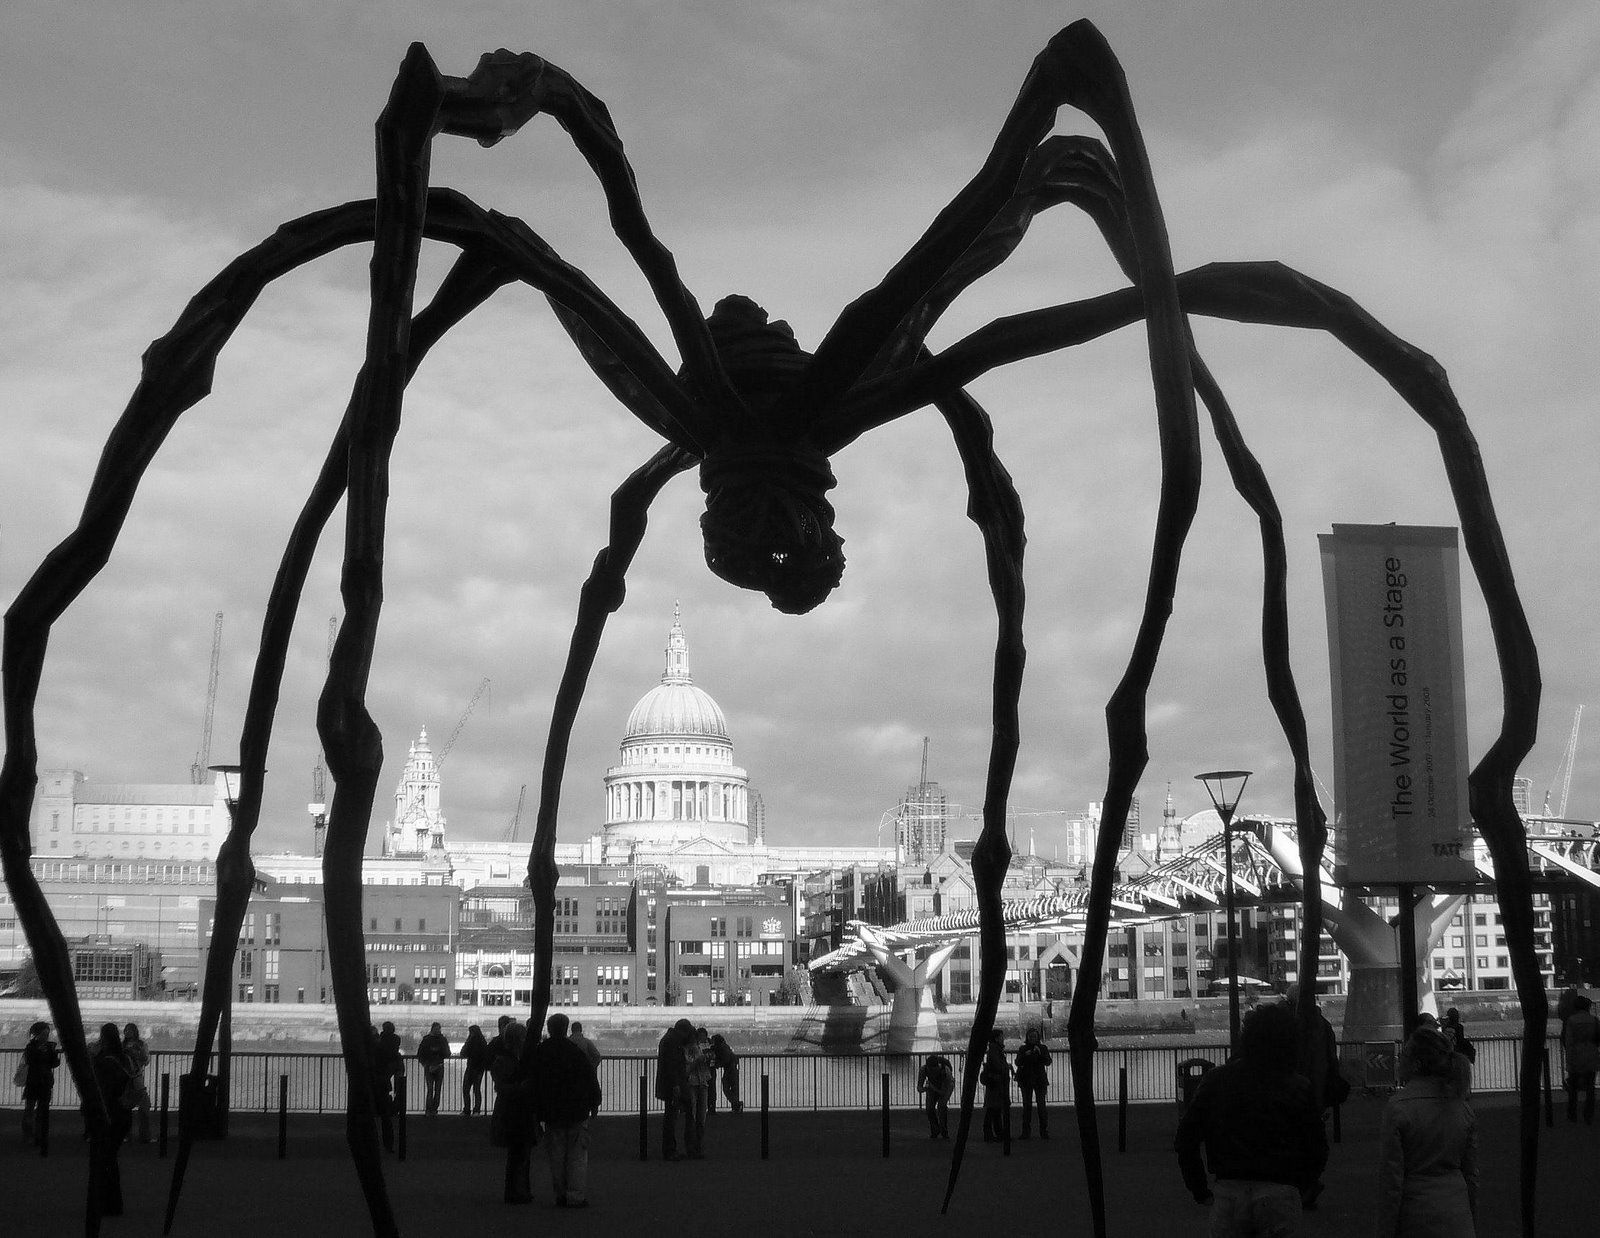 Inspired Inspirationfashion by art louise bourgeois maman best photo